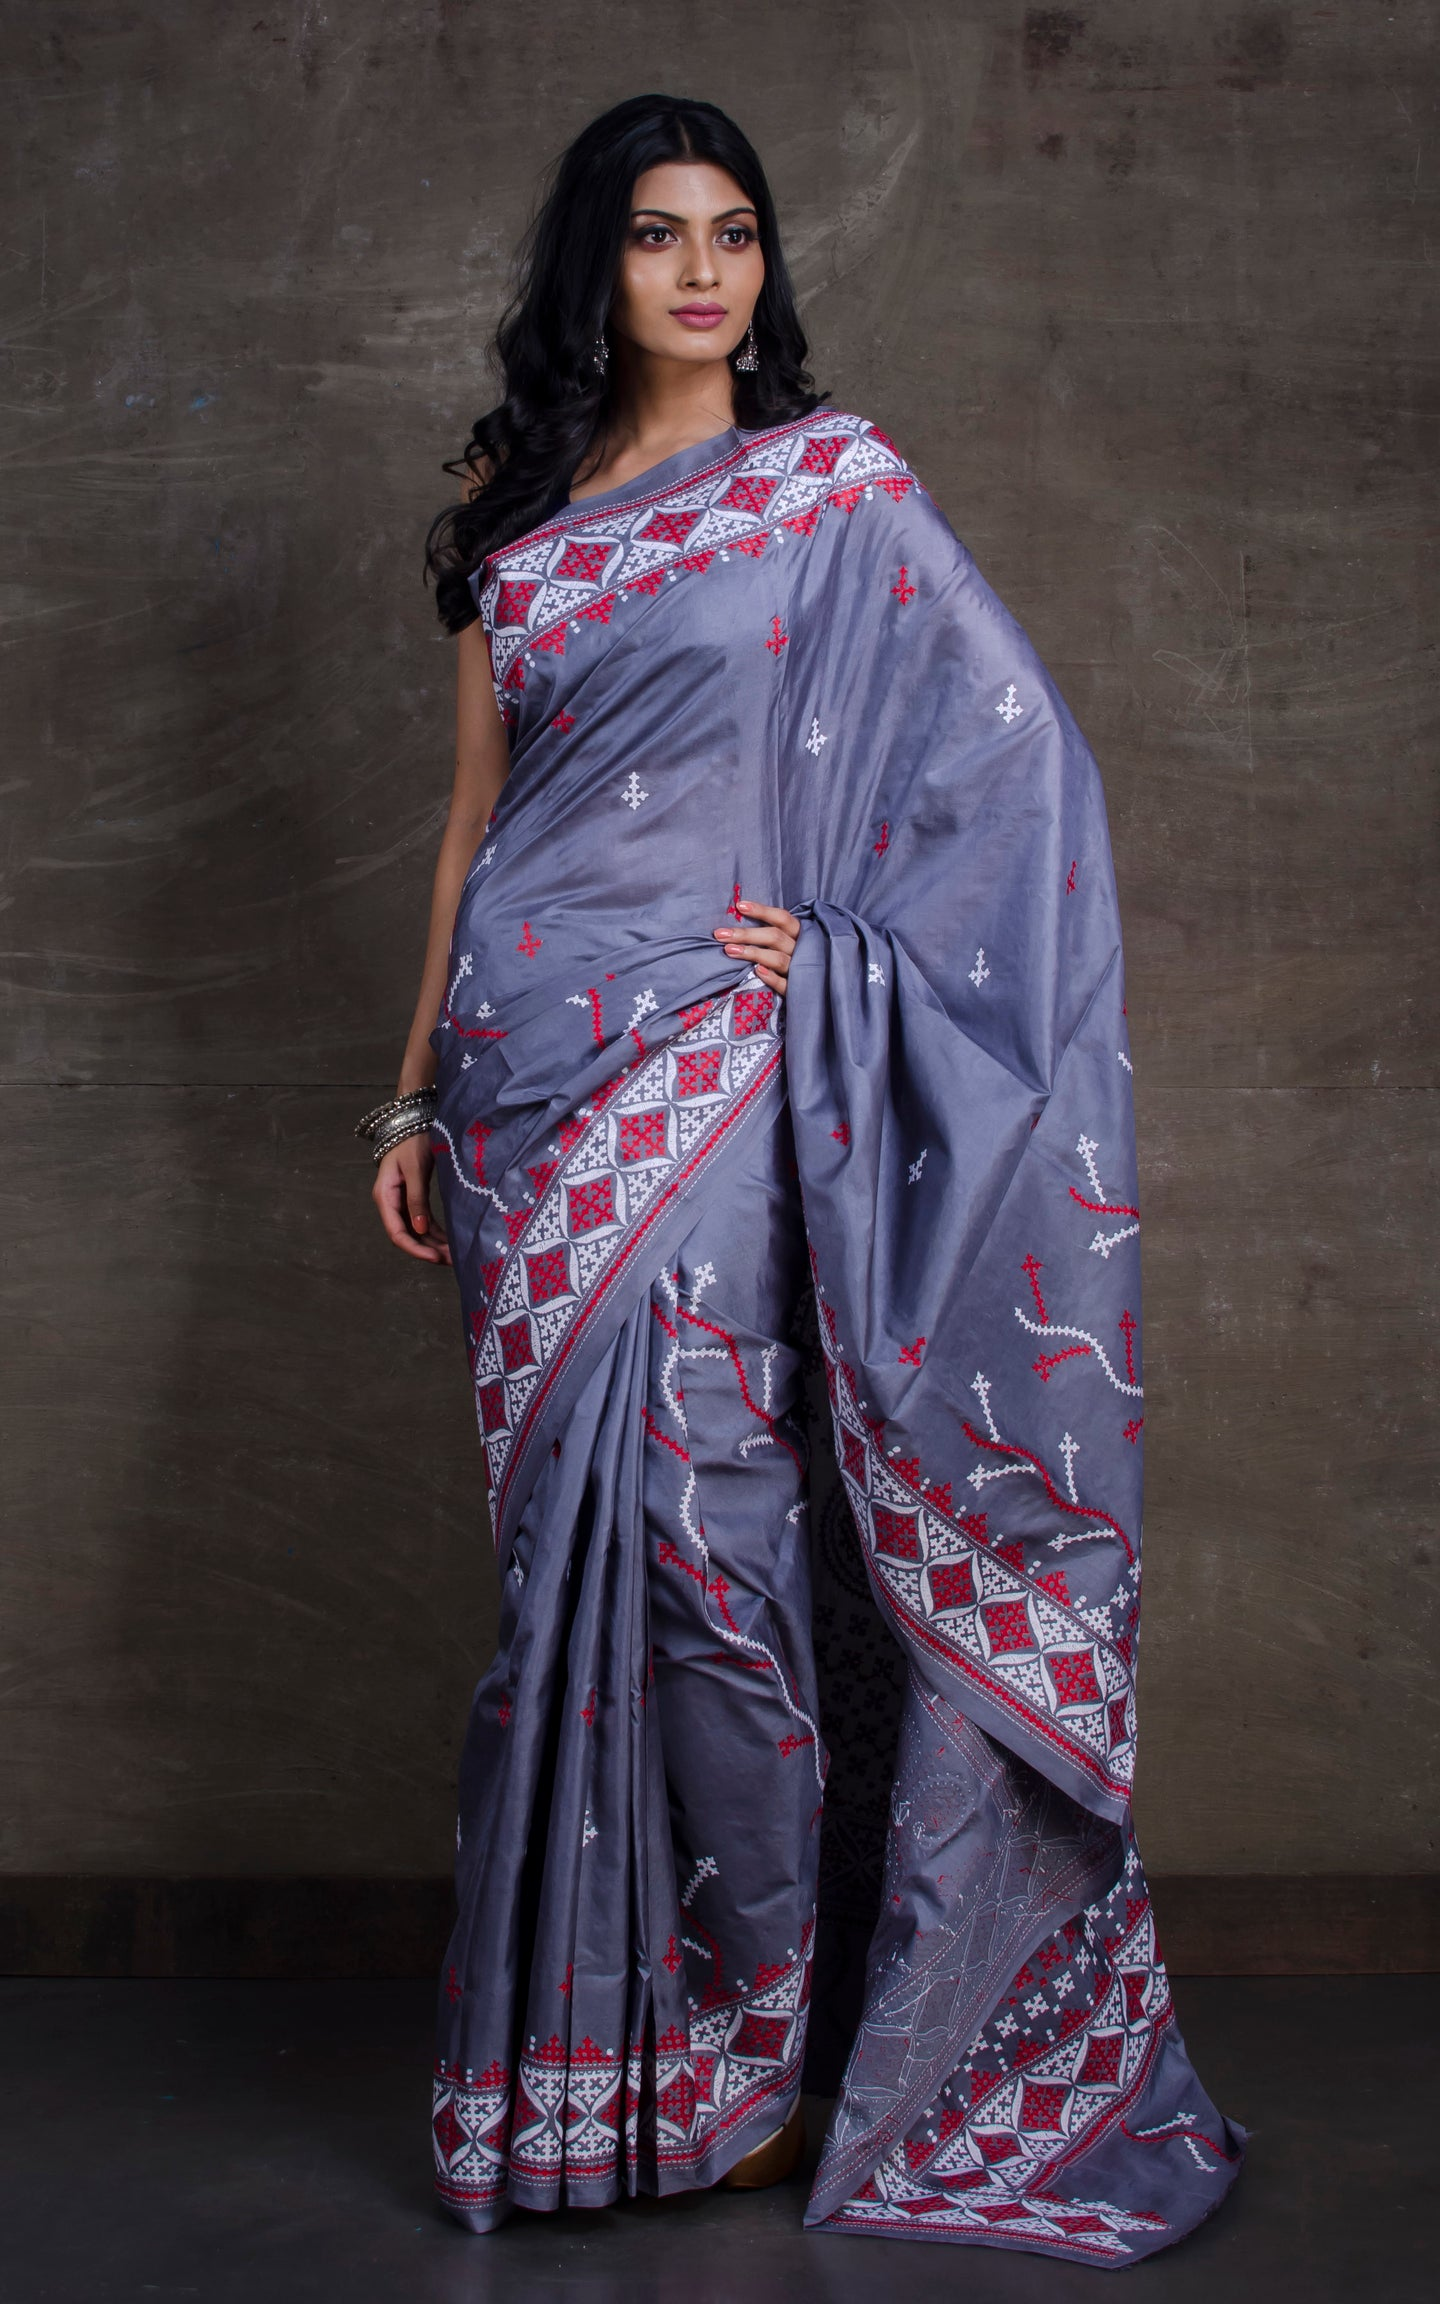 Pure Silk Hand Embroidery Kantha Stitch Saree in Steel Grey, Red  and Off White